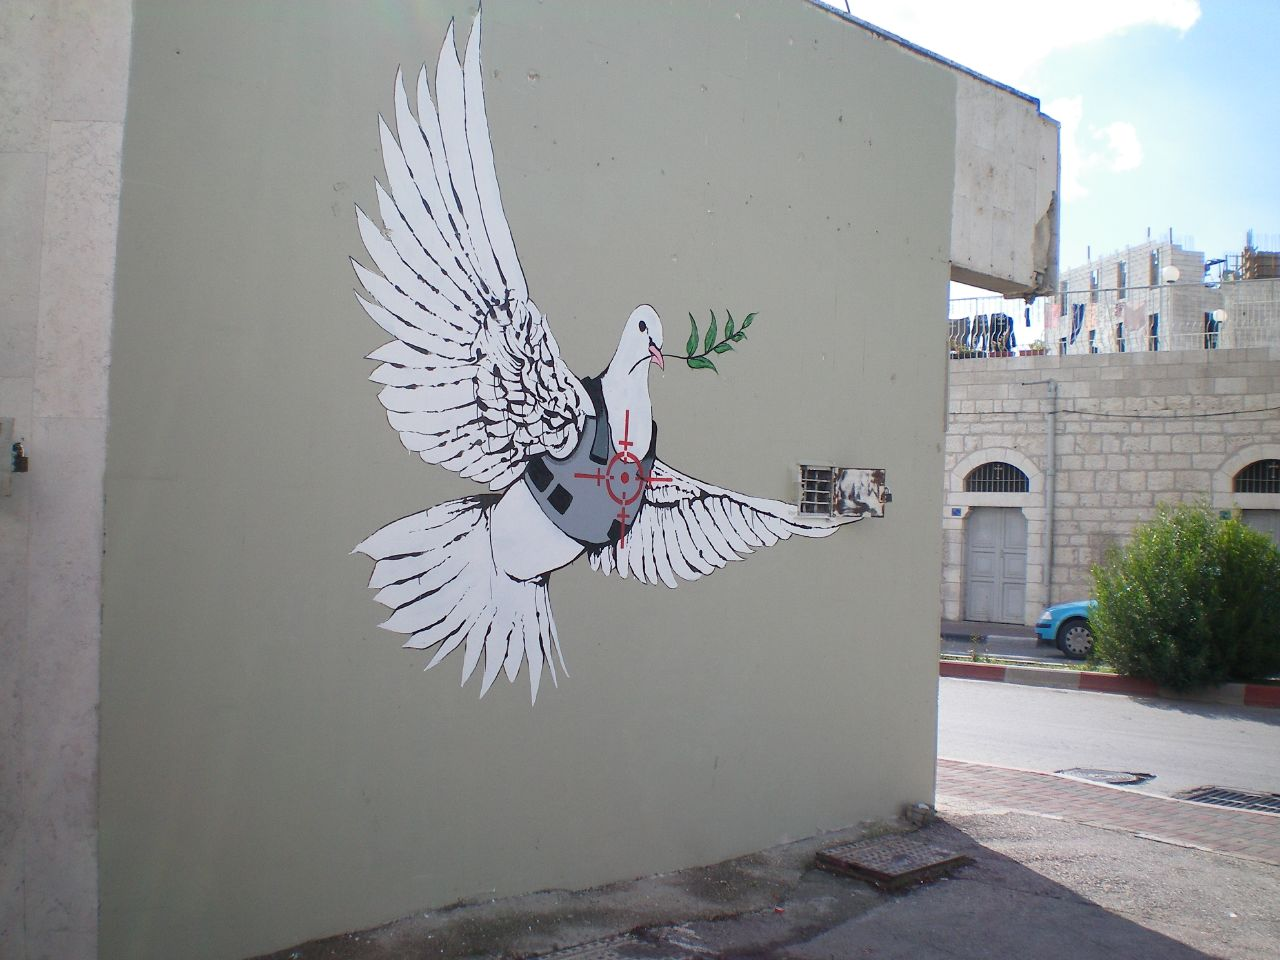 An armed peace dove wearing riot armor